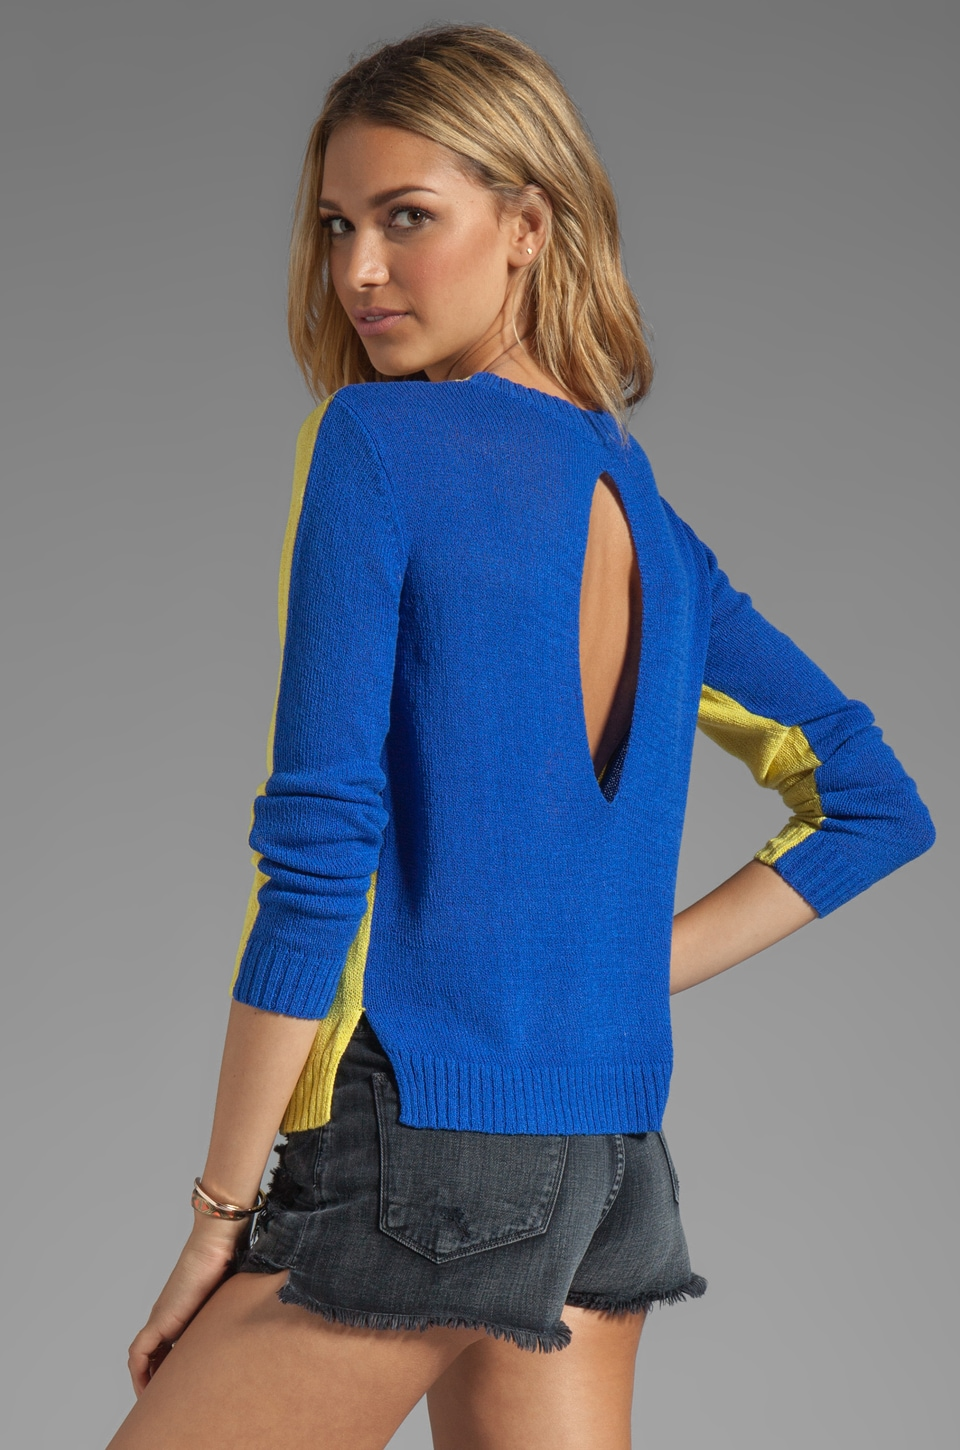 Funktional 2-Tone Sweater in Yuzu/Blue